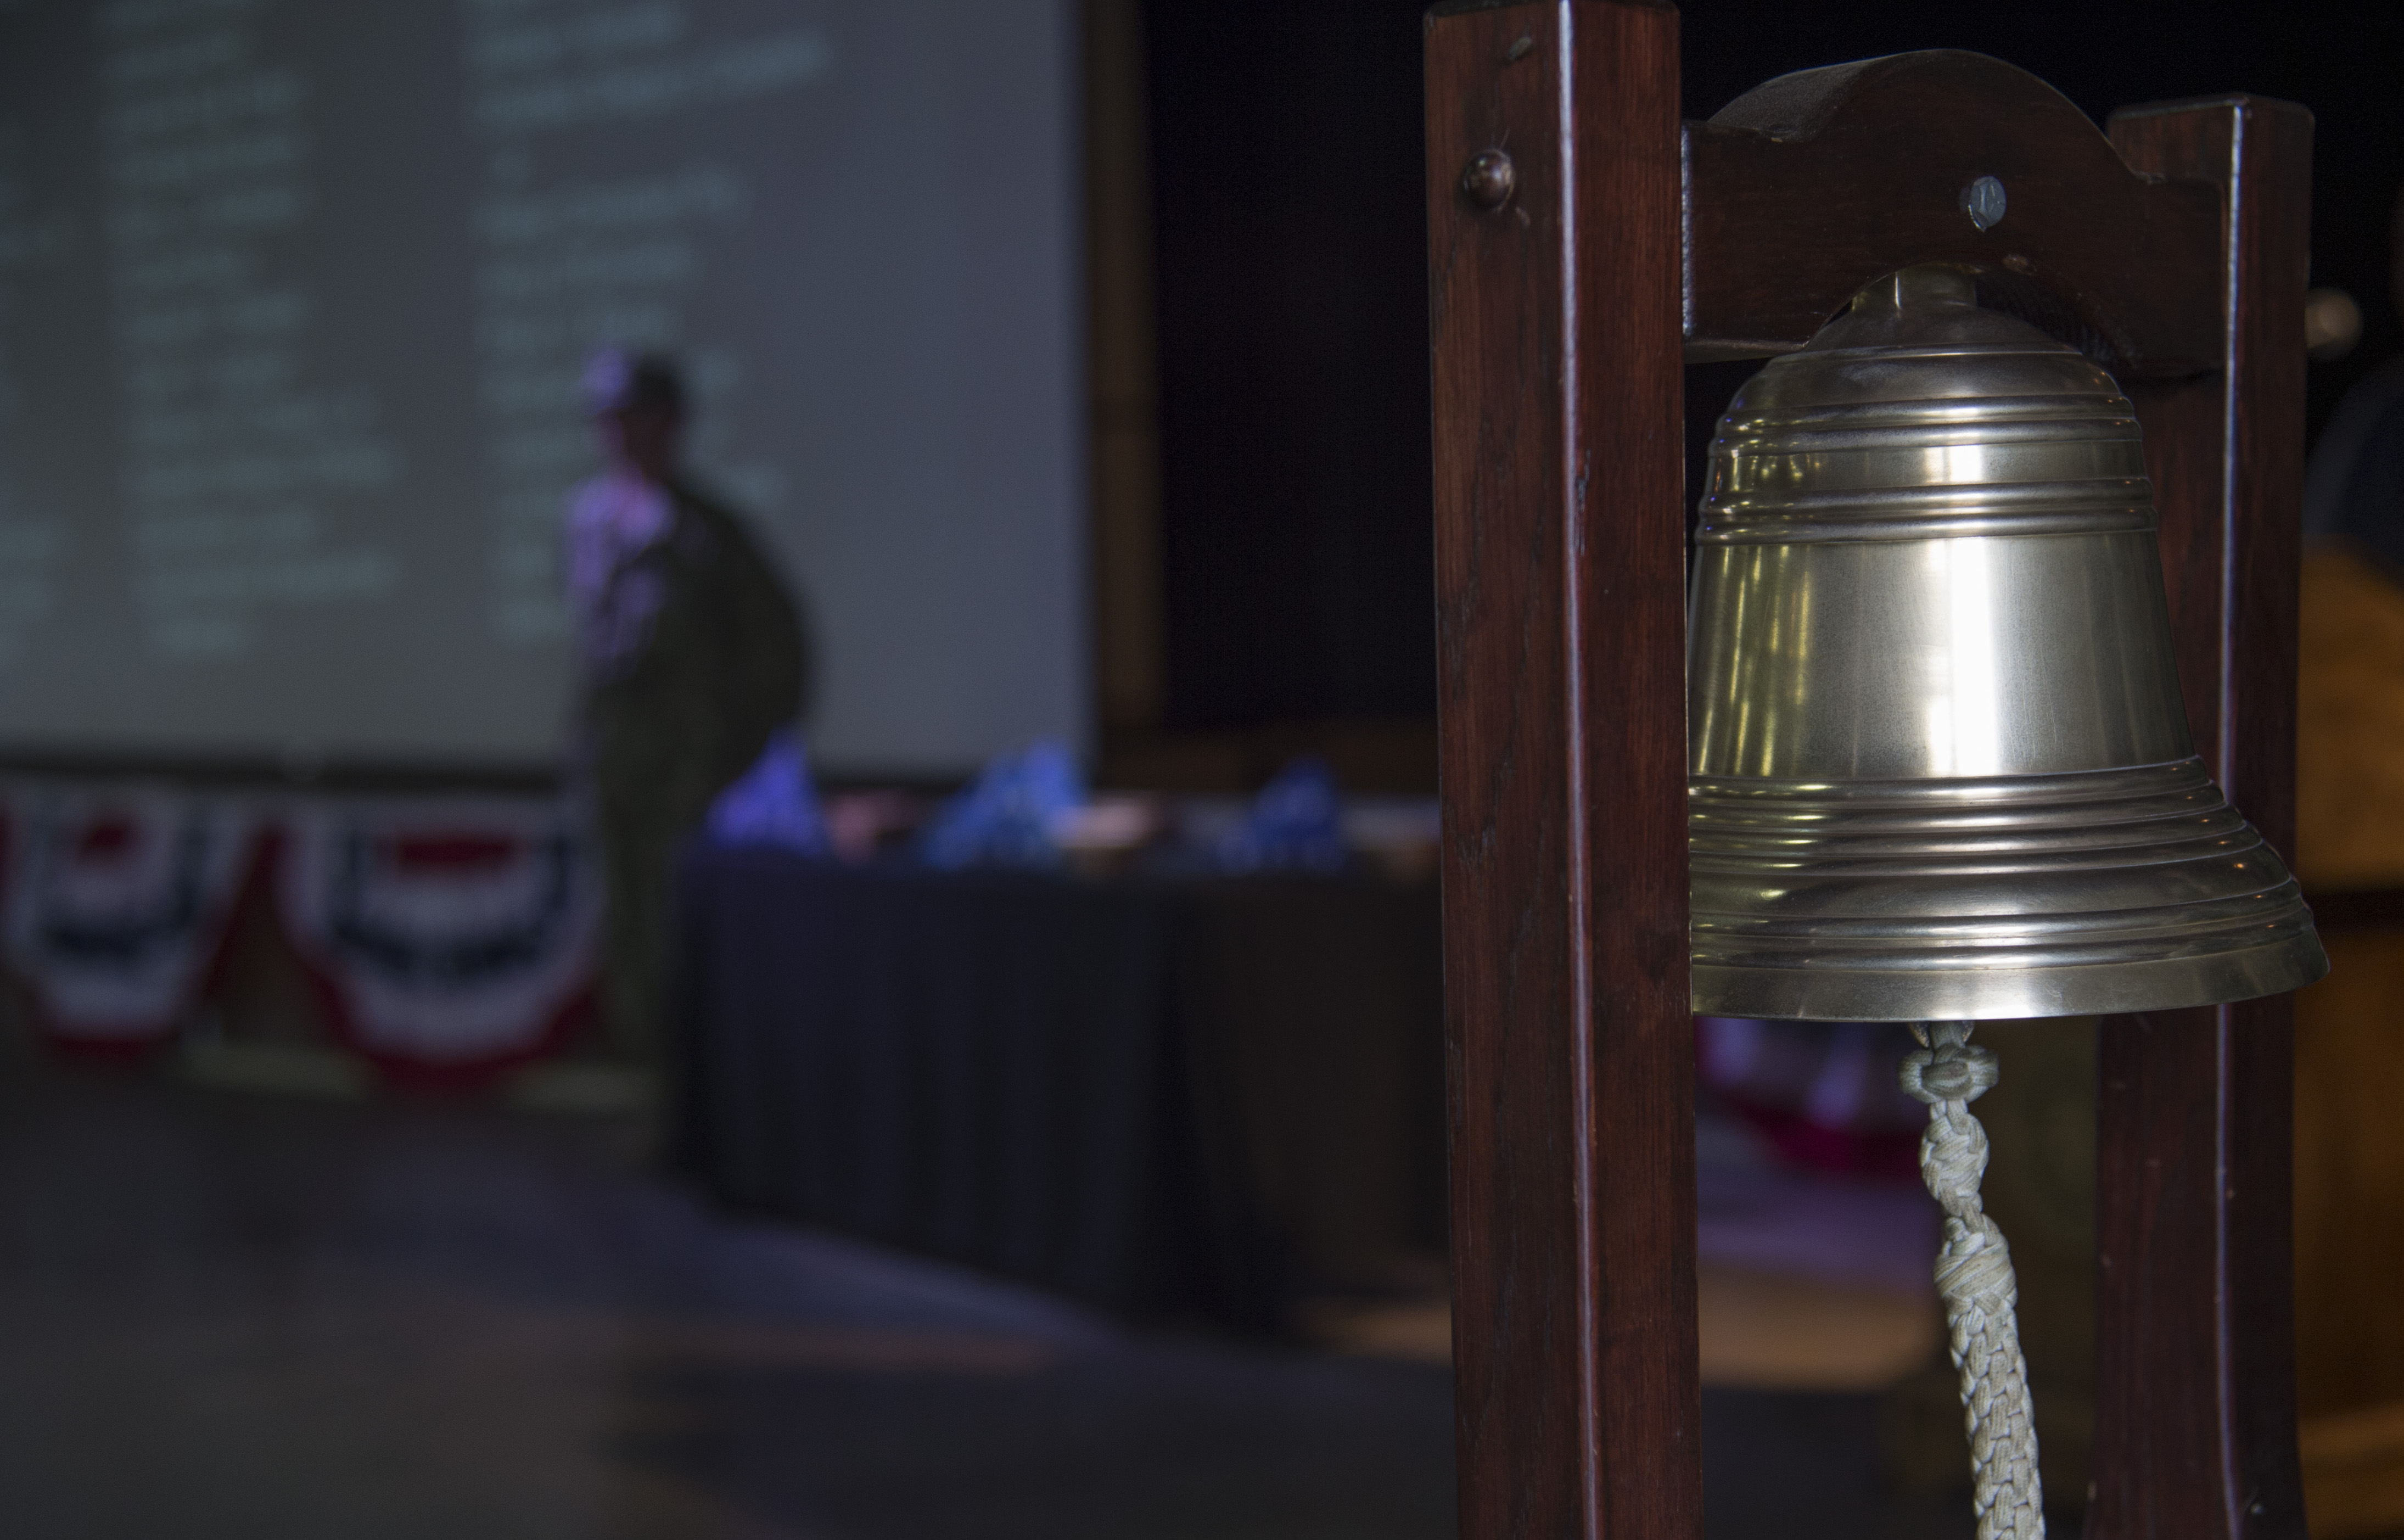 A bell that rang four times to honor the flights that were downed during the 9/11 attacks on America hangs silently during a remembrance ceremony held Sept. 11, 2016, at Camp Lemonnier, Djibouti. The ceremony was organized and conducted by Fiscal Year 2017 Chief Petty Officer selectees from Camp Lemonnier and Combined Joint Task Force - Horn of Africa.  (U.S. Air Force photo by Staff Sgt. Eric Summers Jr.)